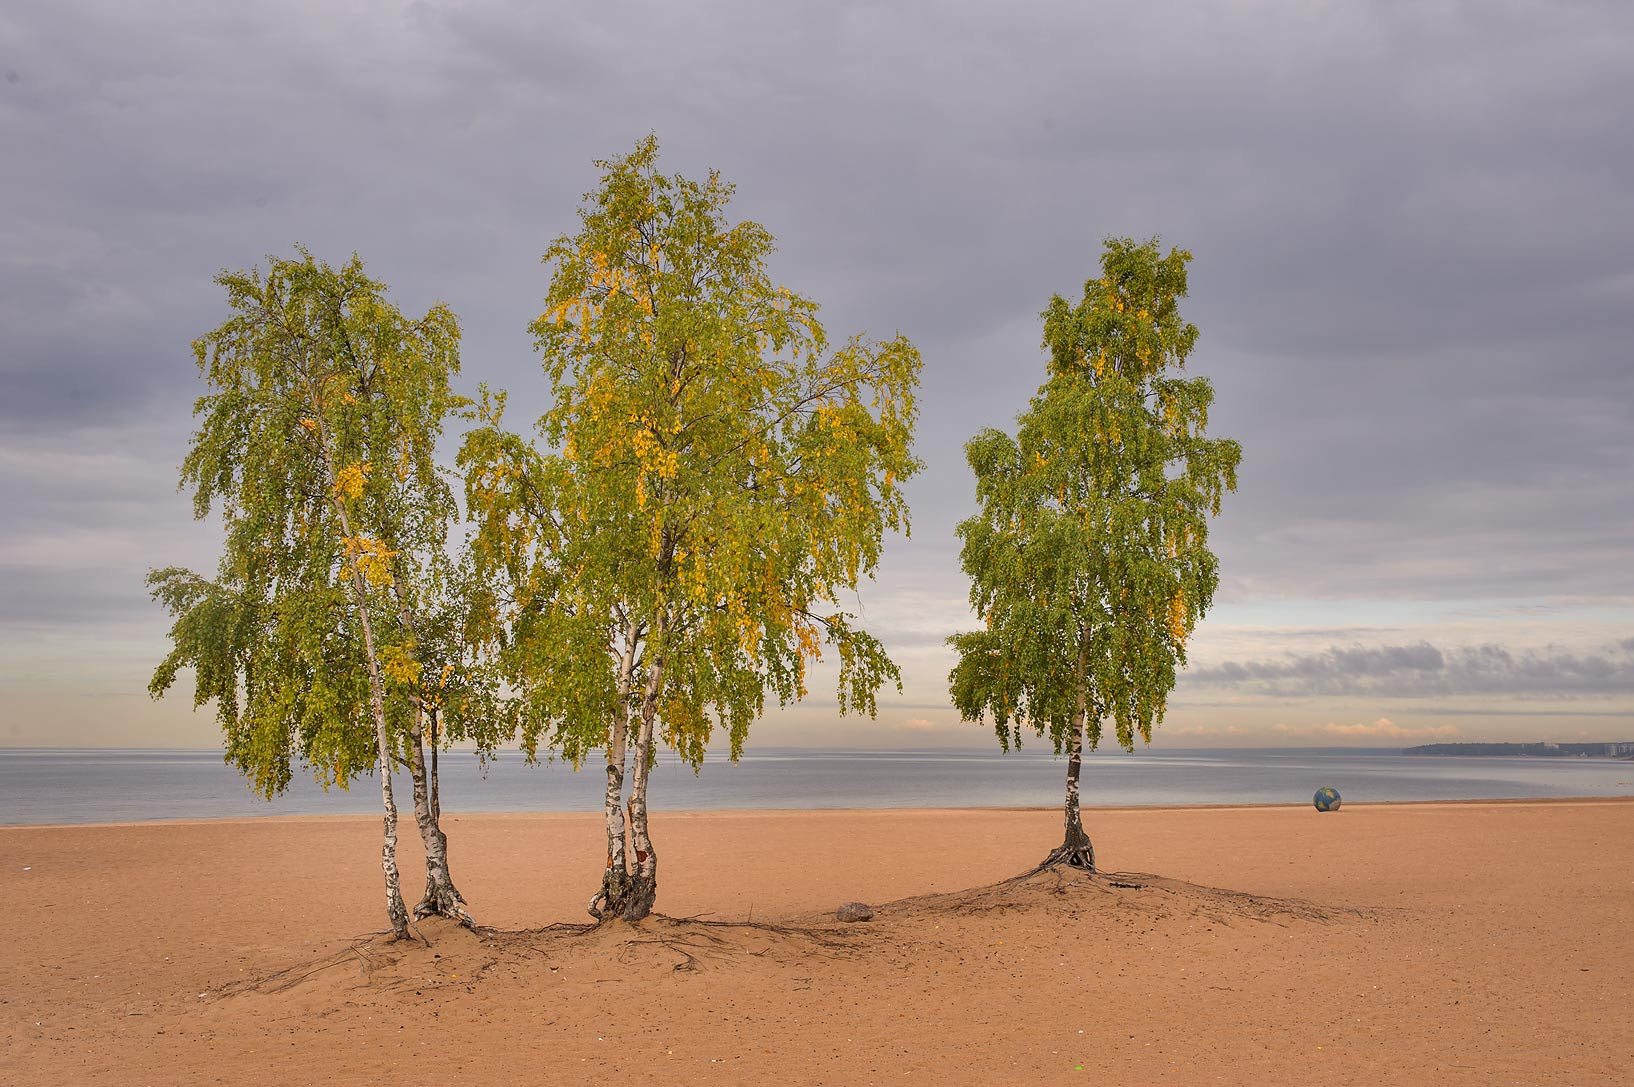 Several birch trees on Laskovy Beach in Solnechnoe, west from St.Petersburg. Russia